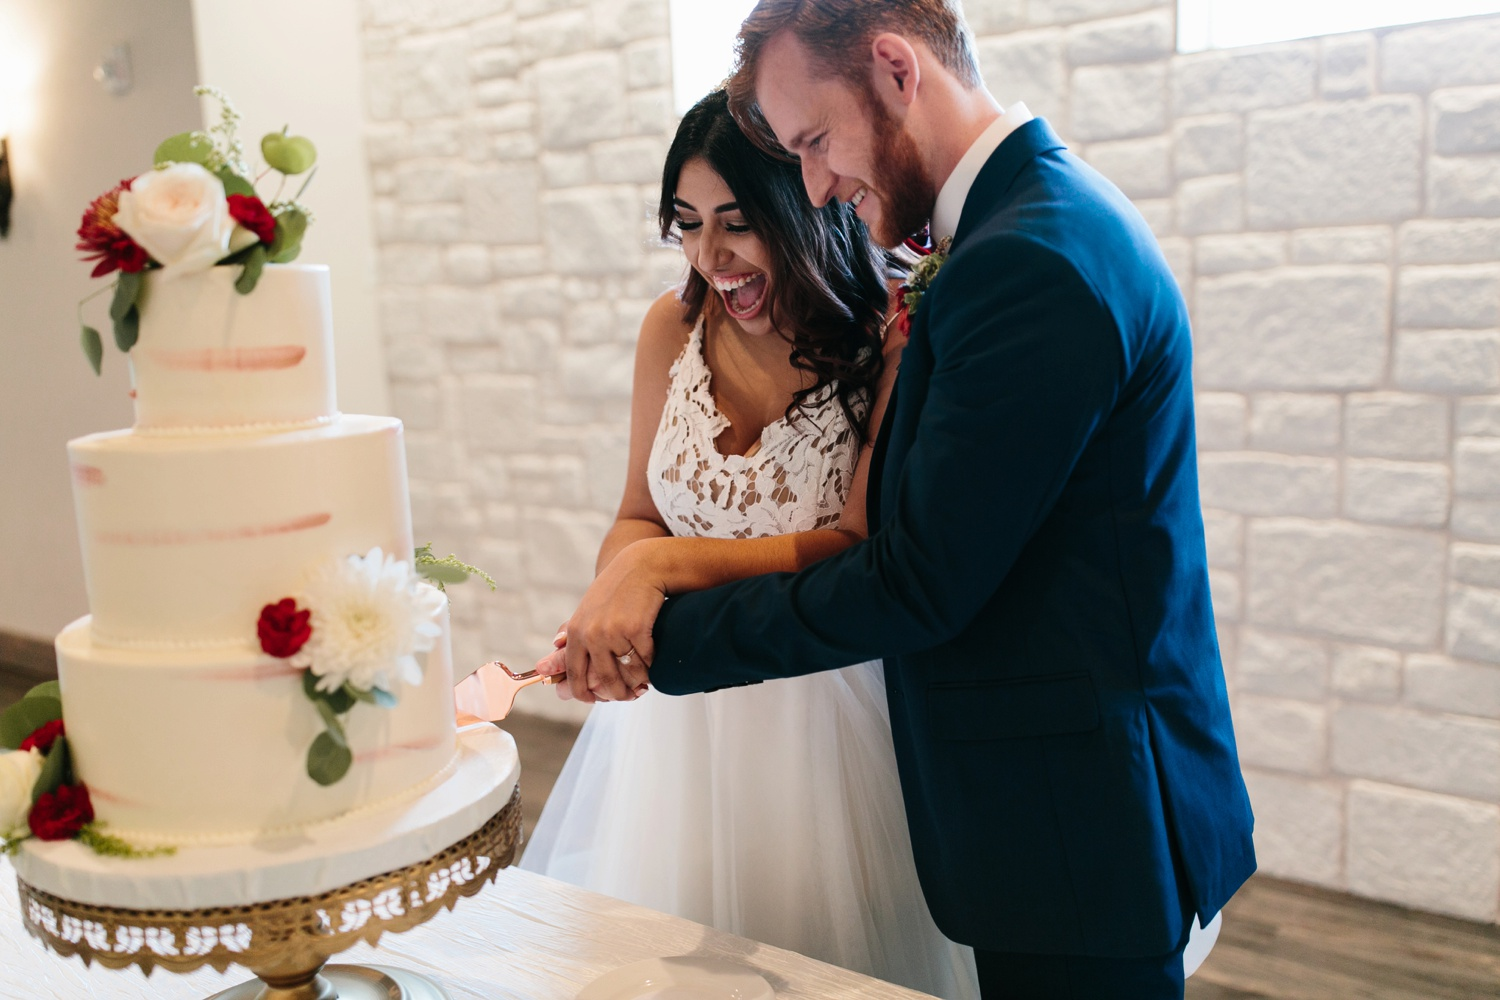 Grant + Lysette | a vibrant, deep burgundy and navy, and mixed metals wedding at Hidden Pines Chapel by North Texas Wedding Photographer Rachel Meagan Photography 146